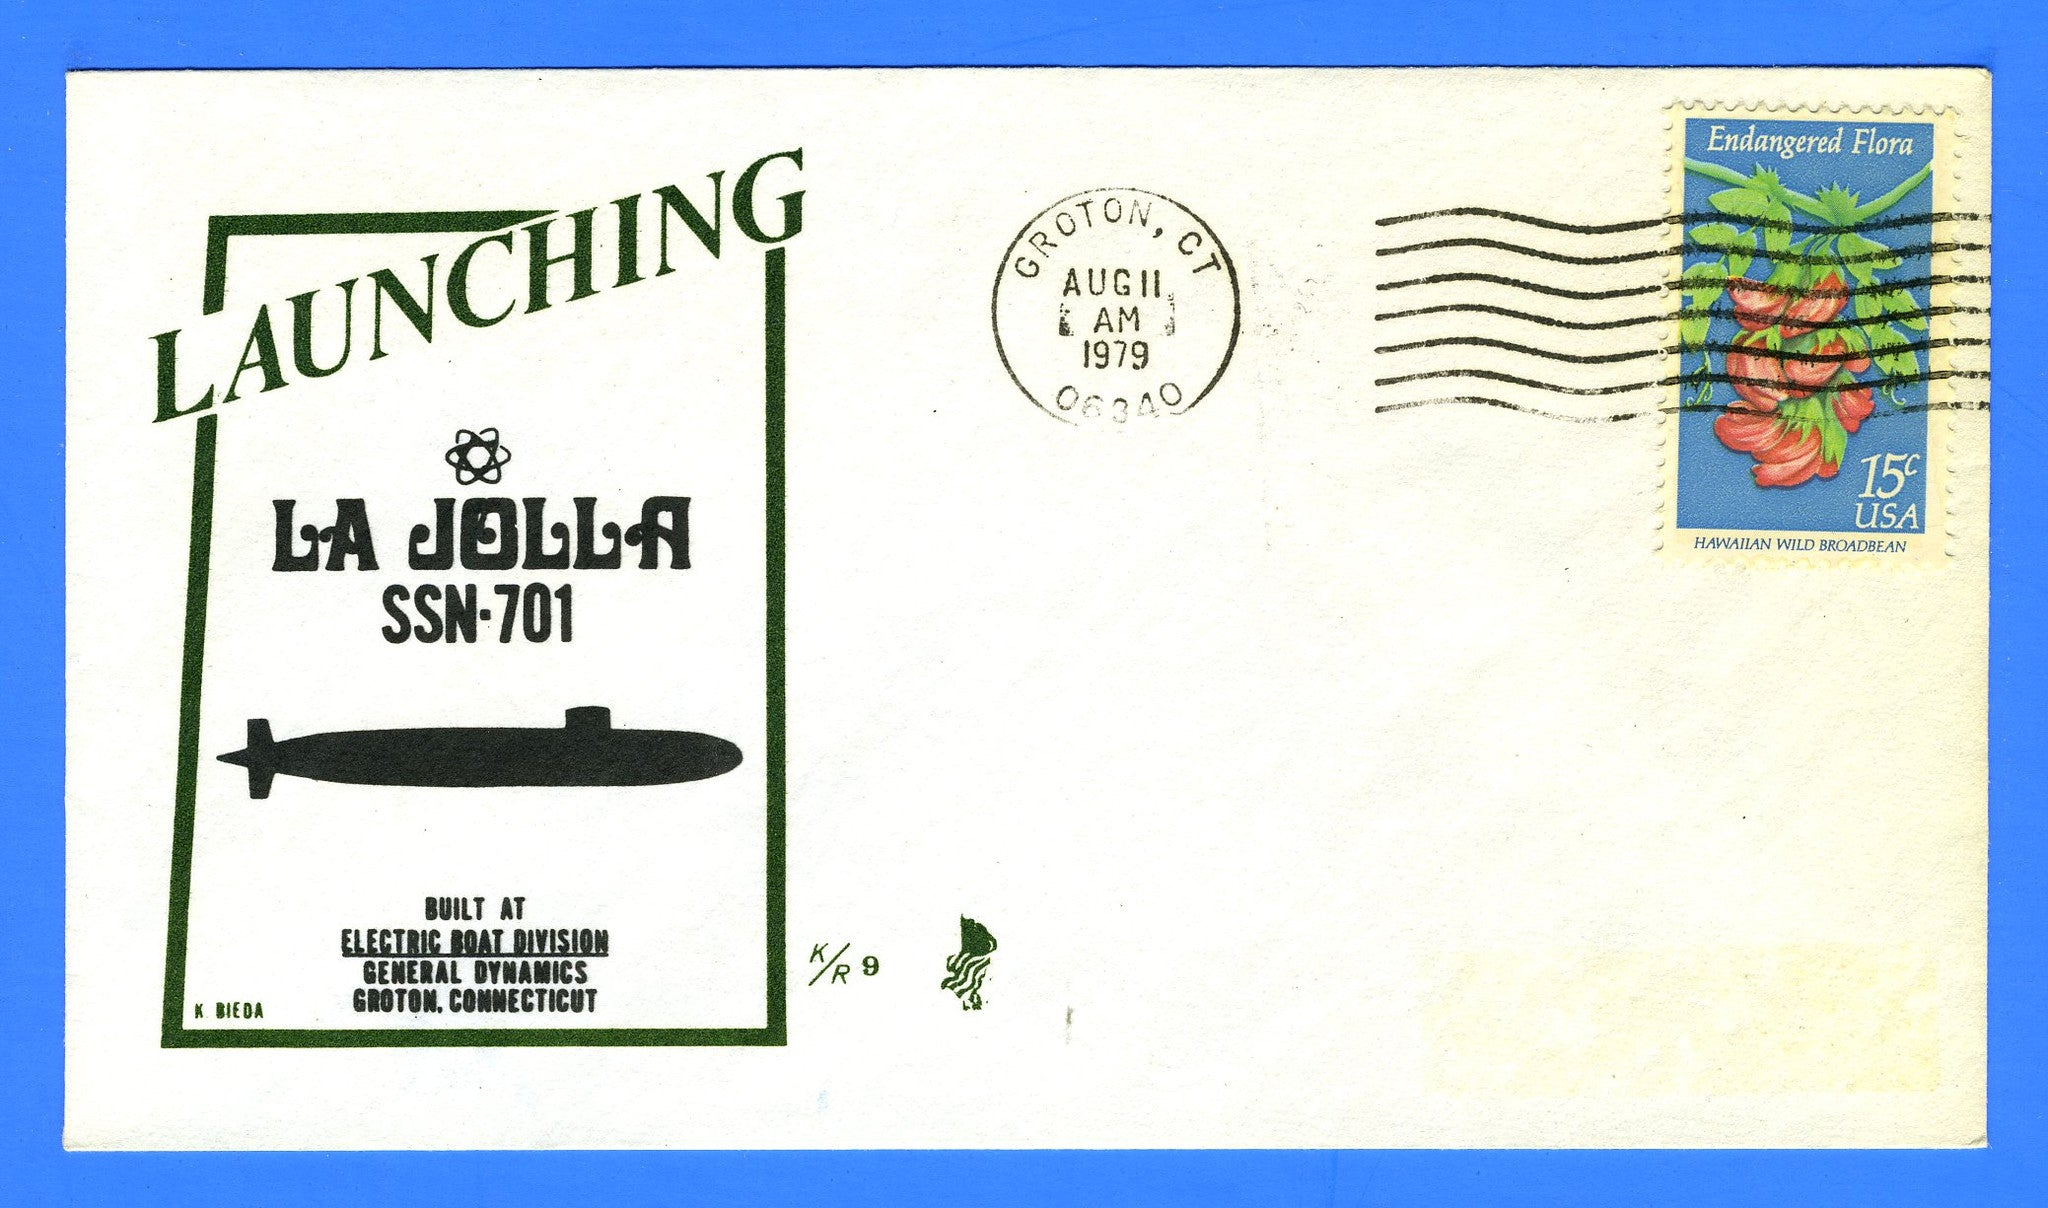 USS La Jolla SSN-701 Launched August 11, 1979 - Cachet by Ken Bieda K/R Covers